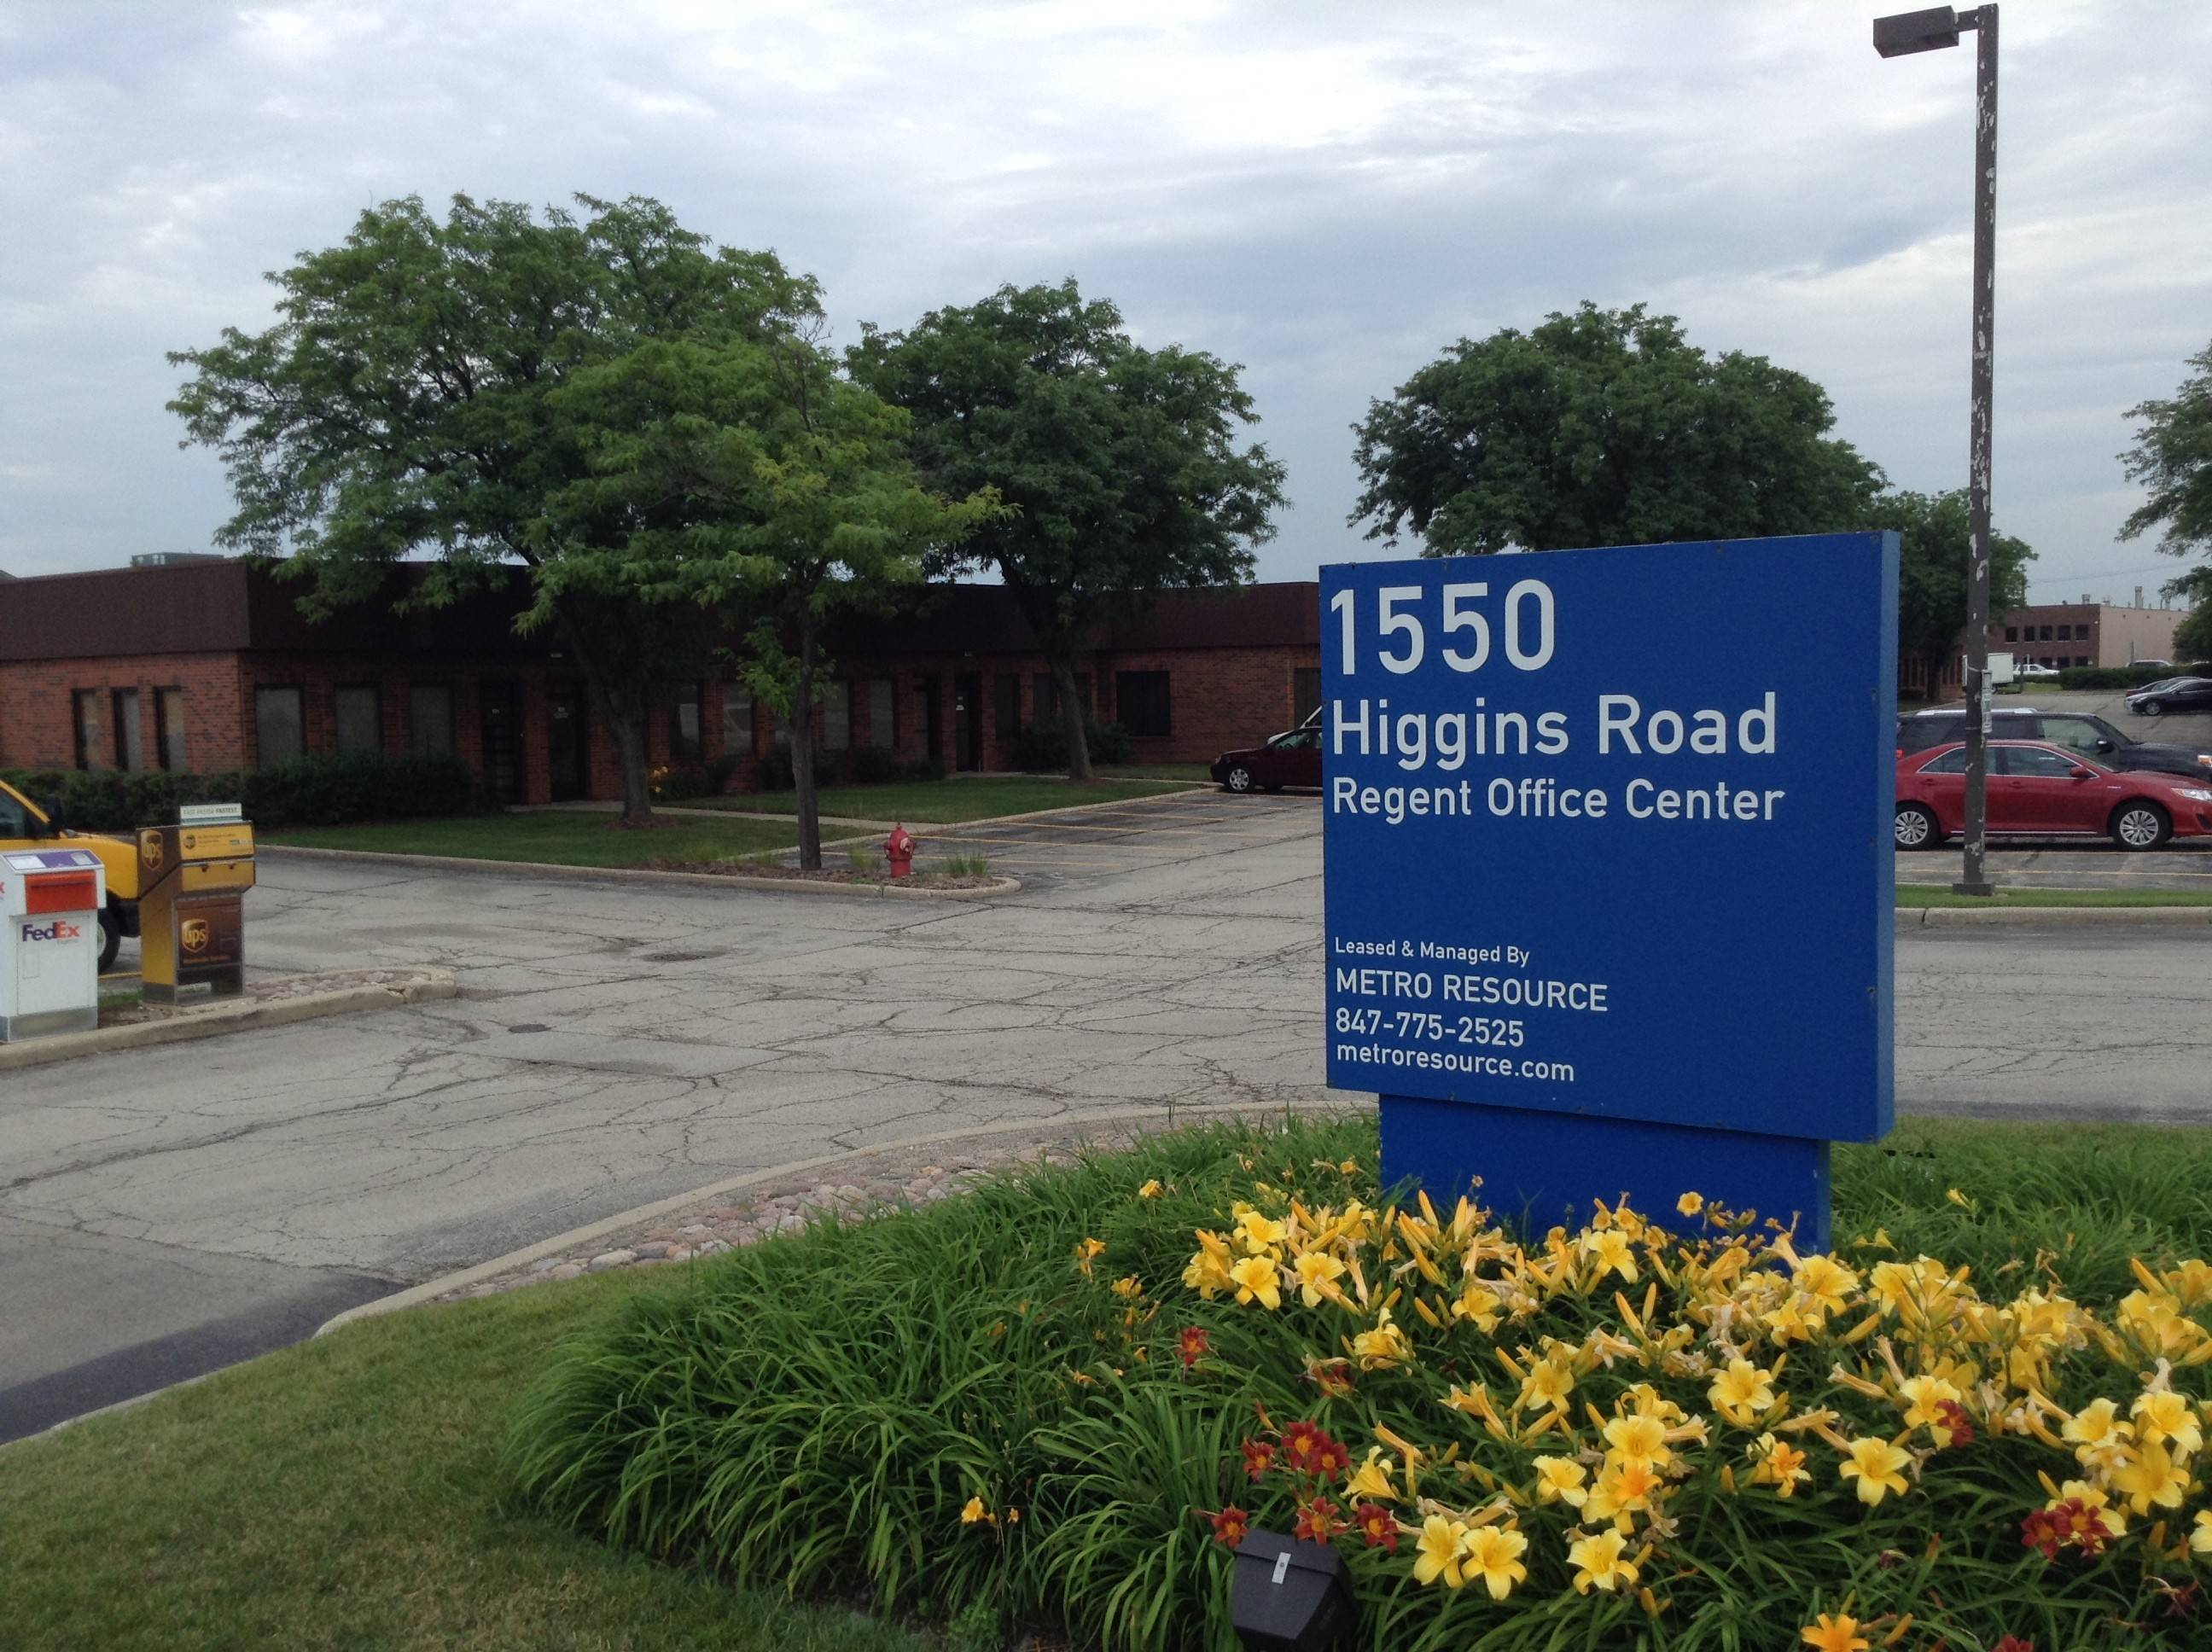 A Christian organization is seeking a special use permit to have Bible study classes and services at 1550 Higgins Road in Elk Grove Village.